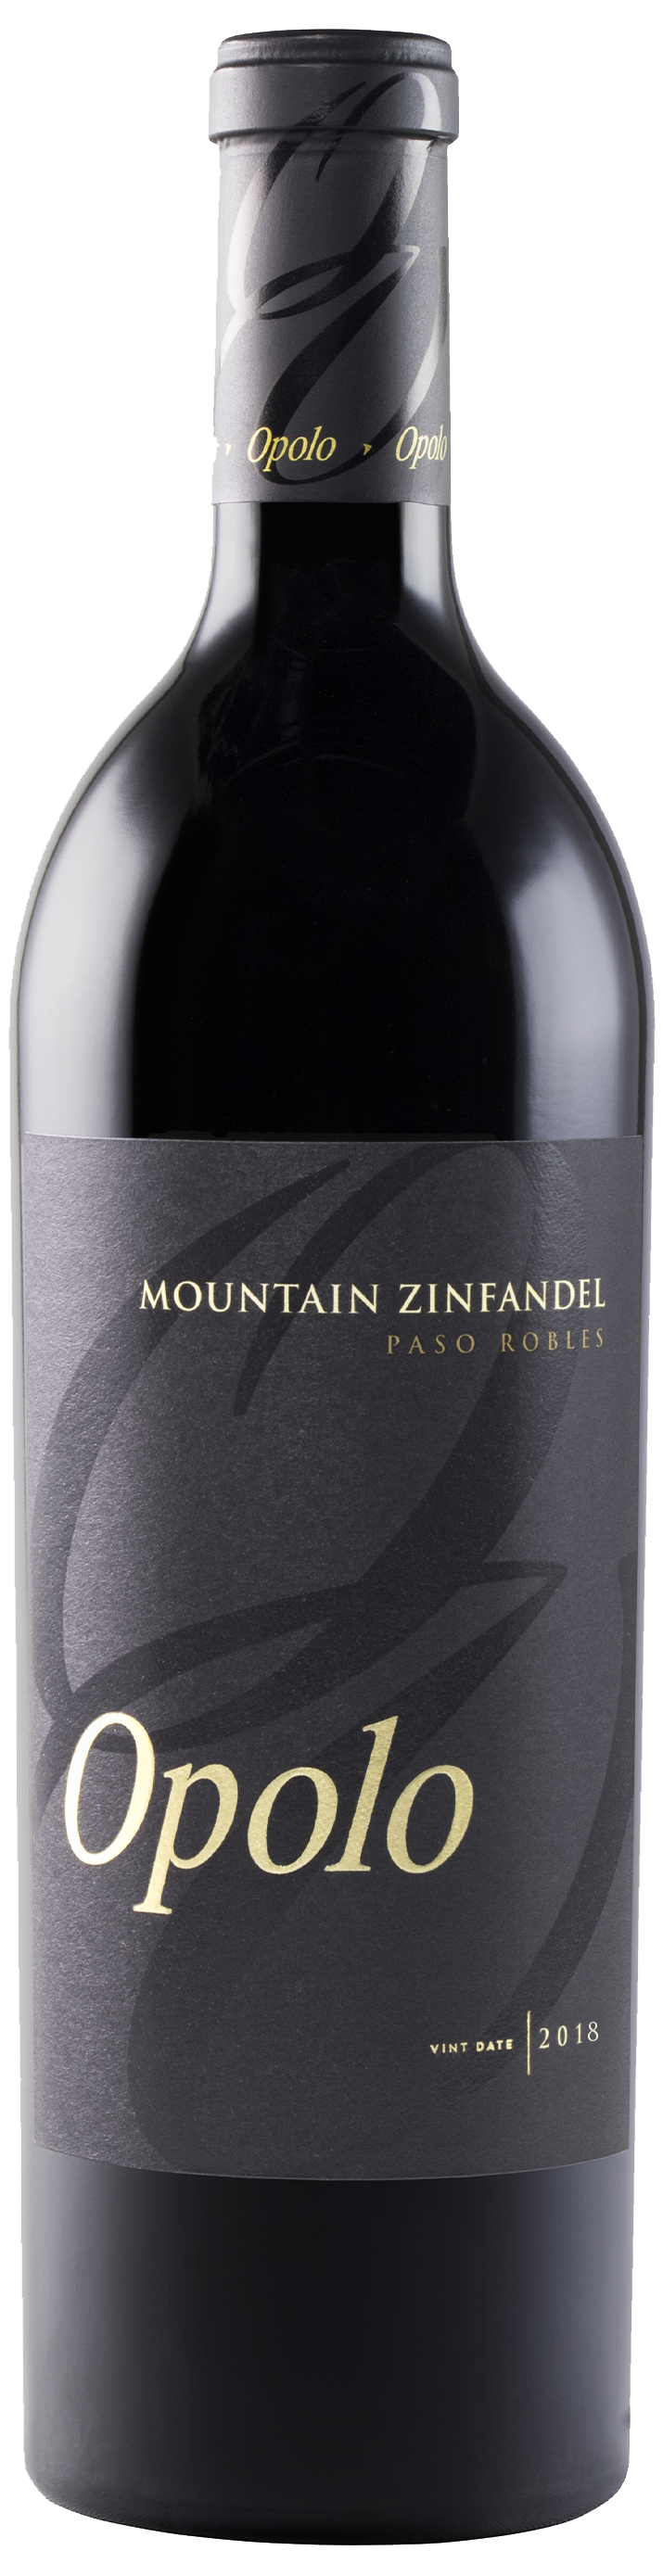 Product Image for 2018 Mountain Zinfandel